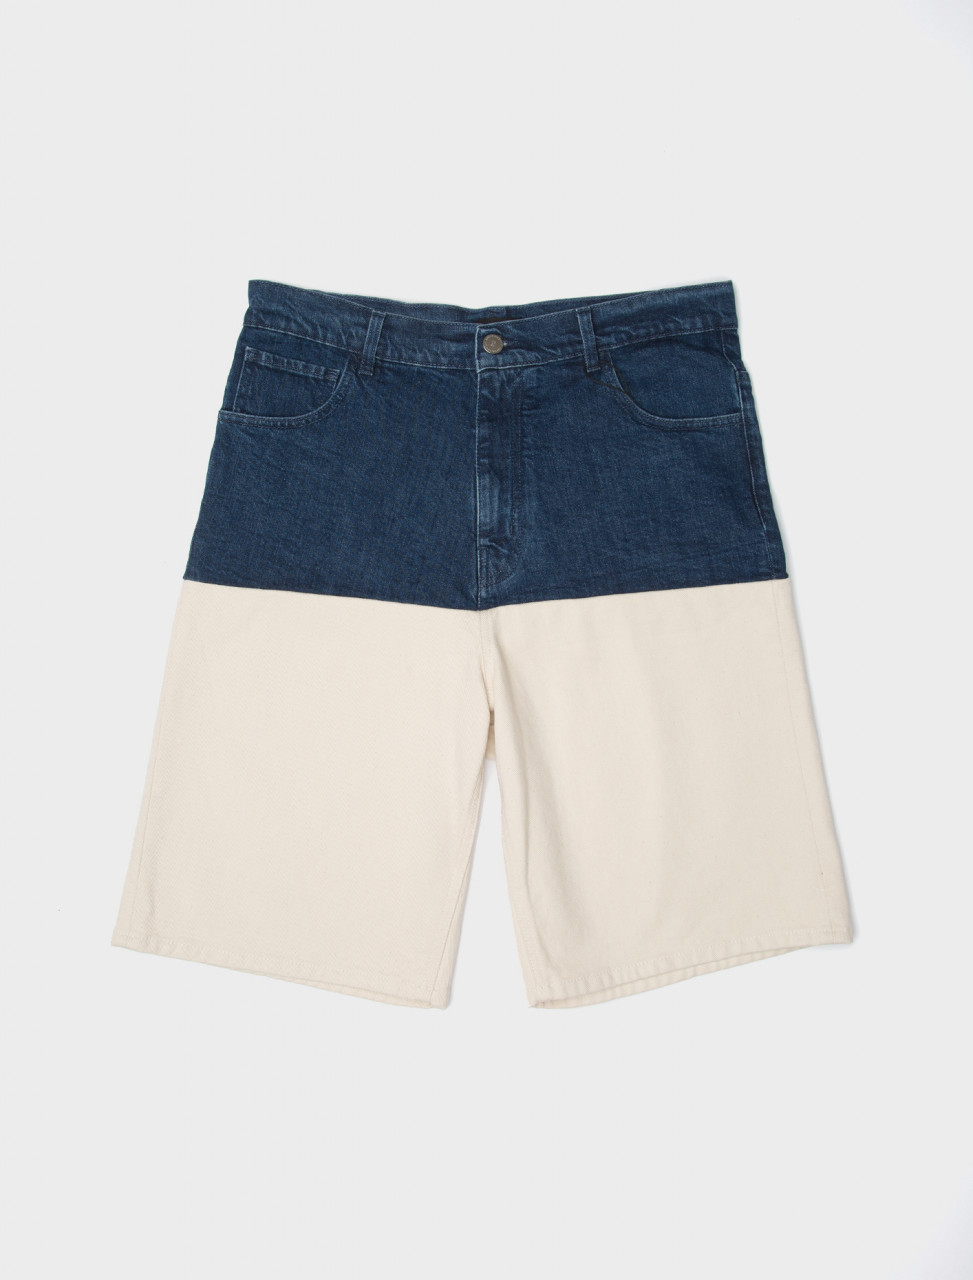 Wide Fit Denim Shorts with Horizontal Cut